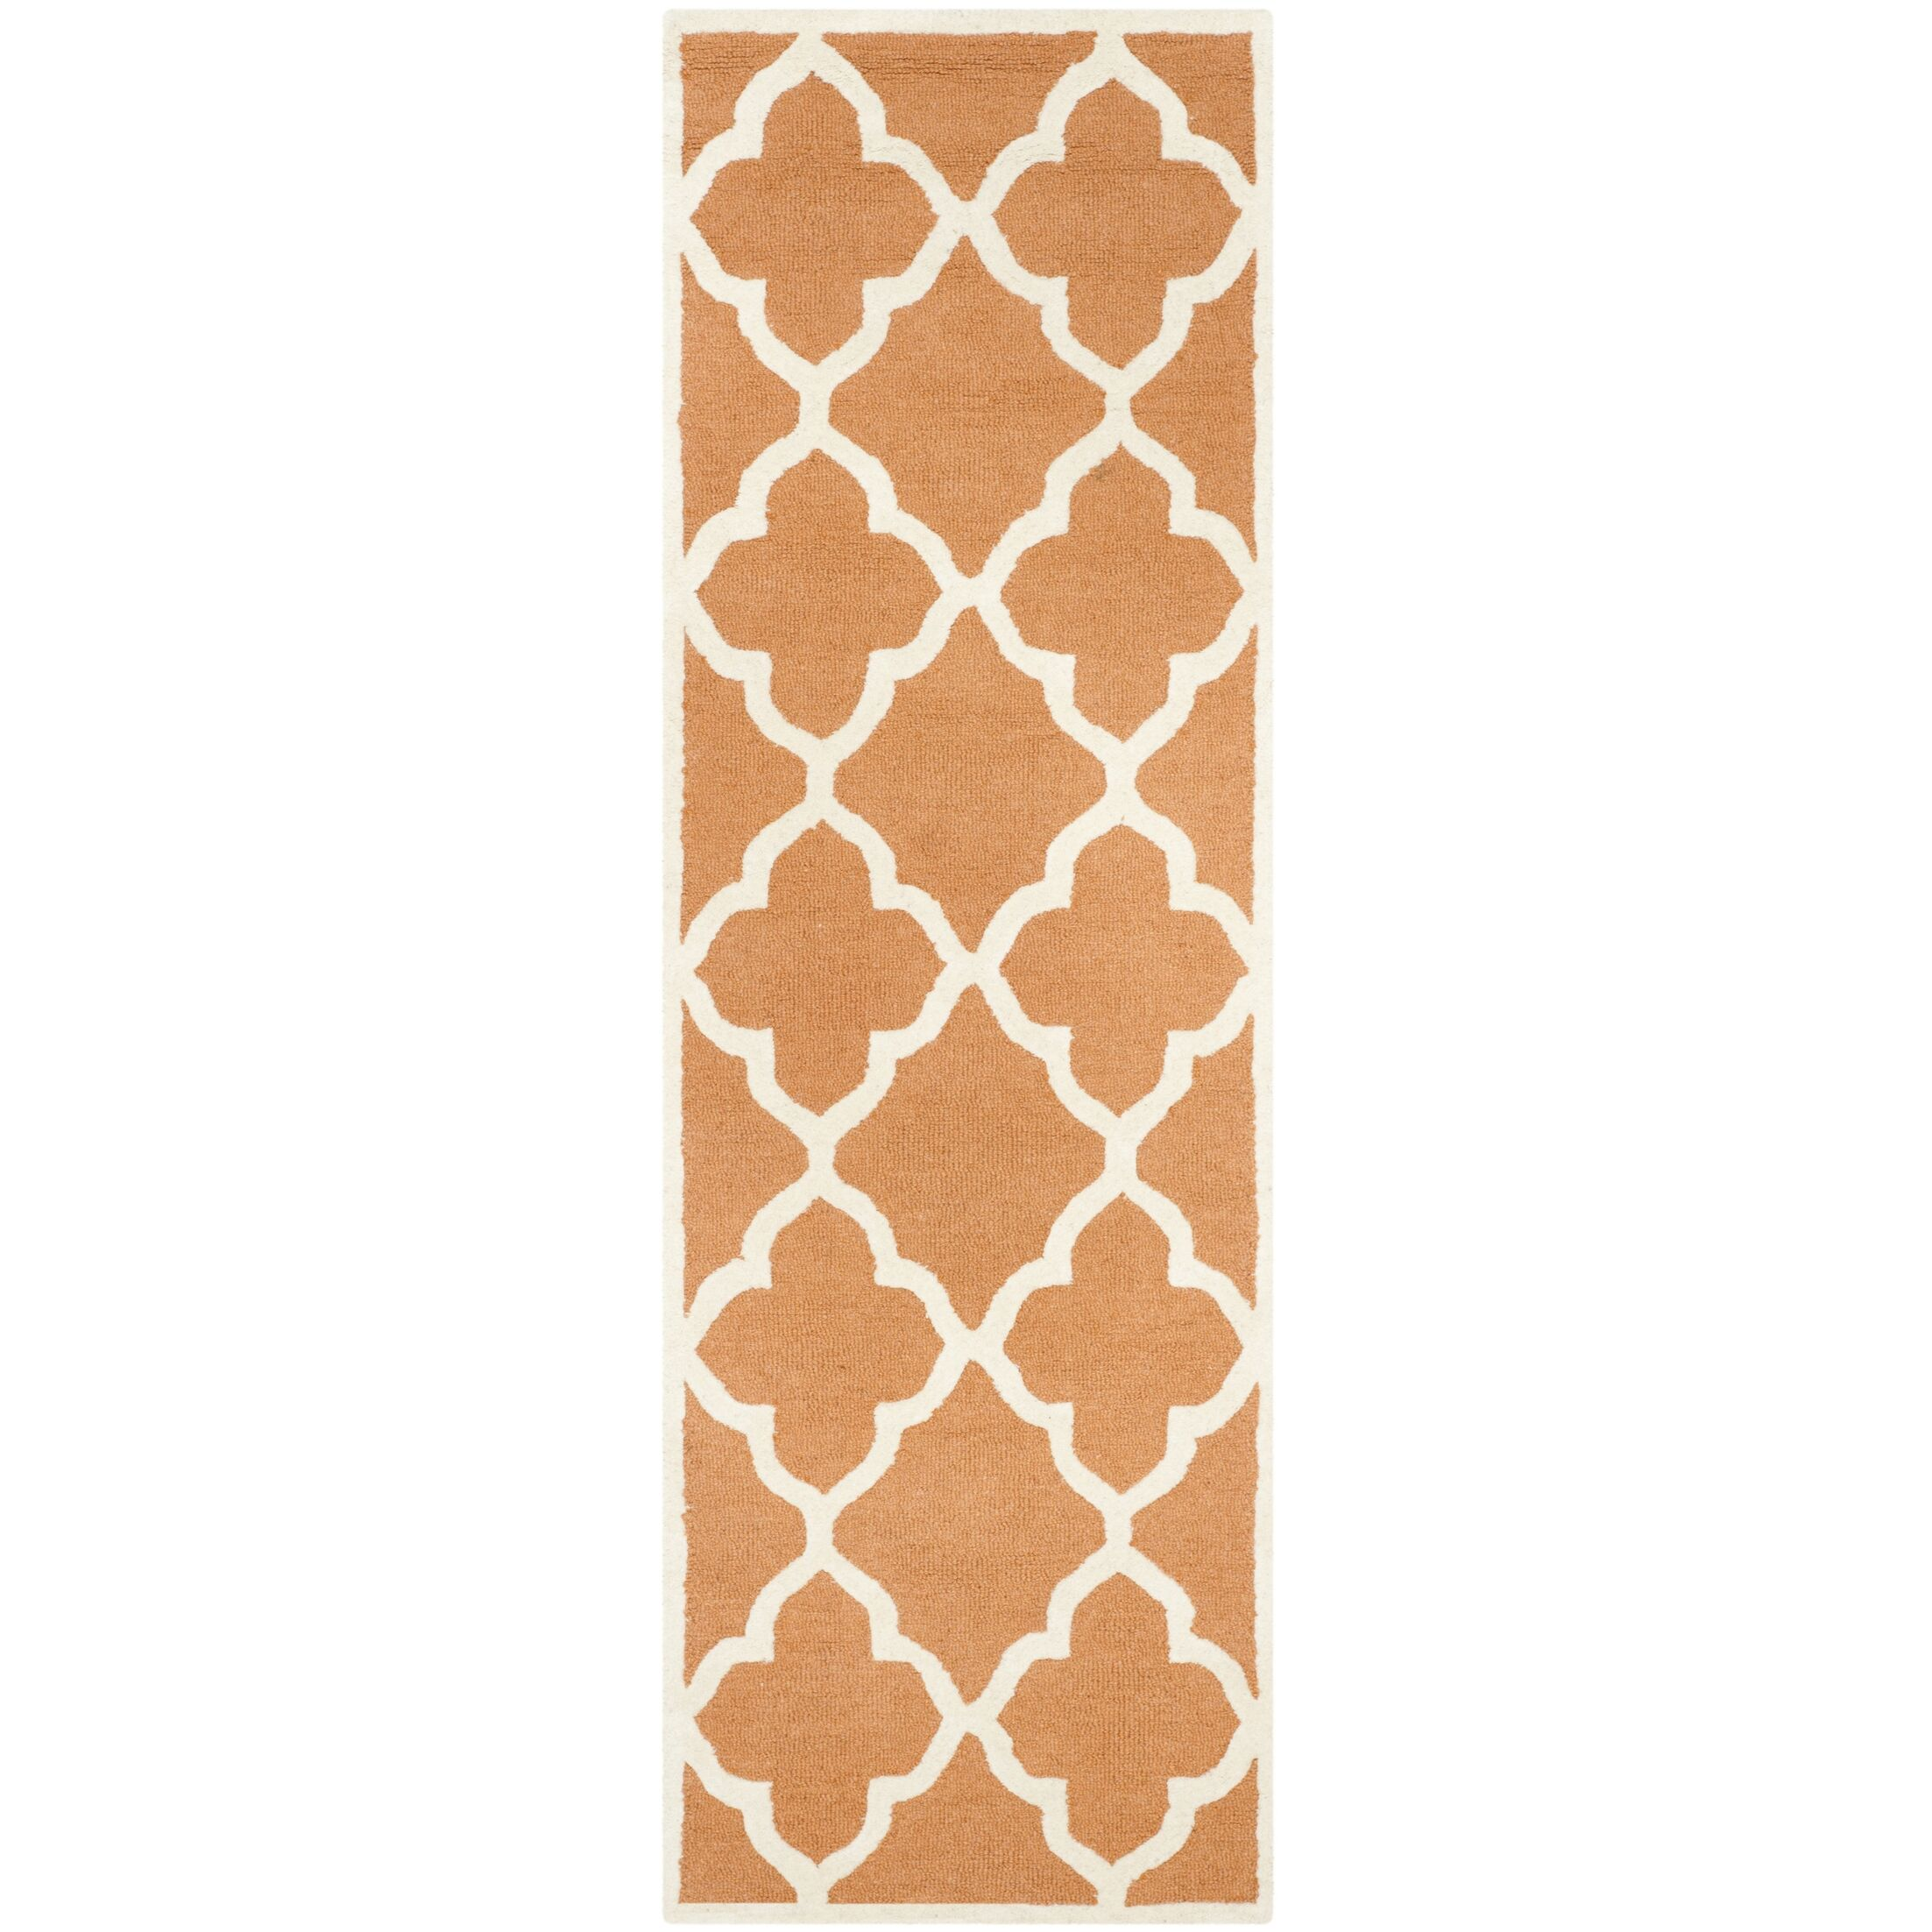 Charlenne Hand-Tufted Orange/Ivory Area Rug Rug Size: Runner 2'6